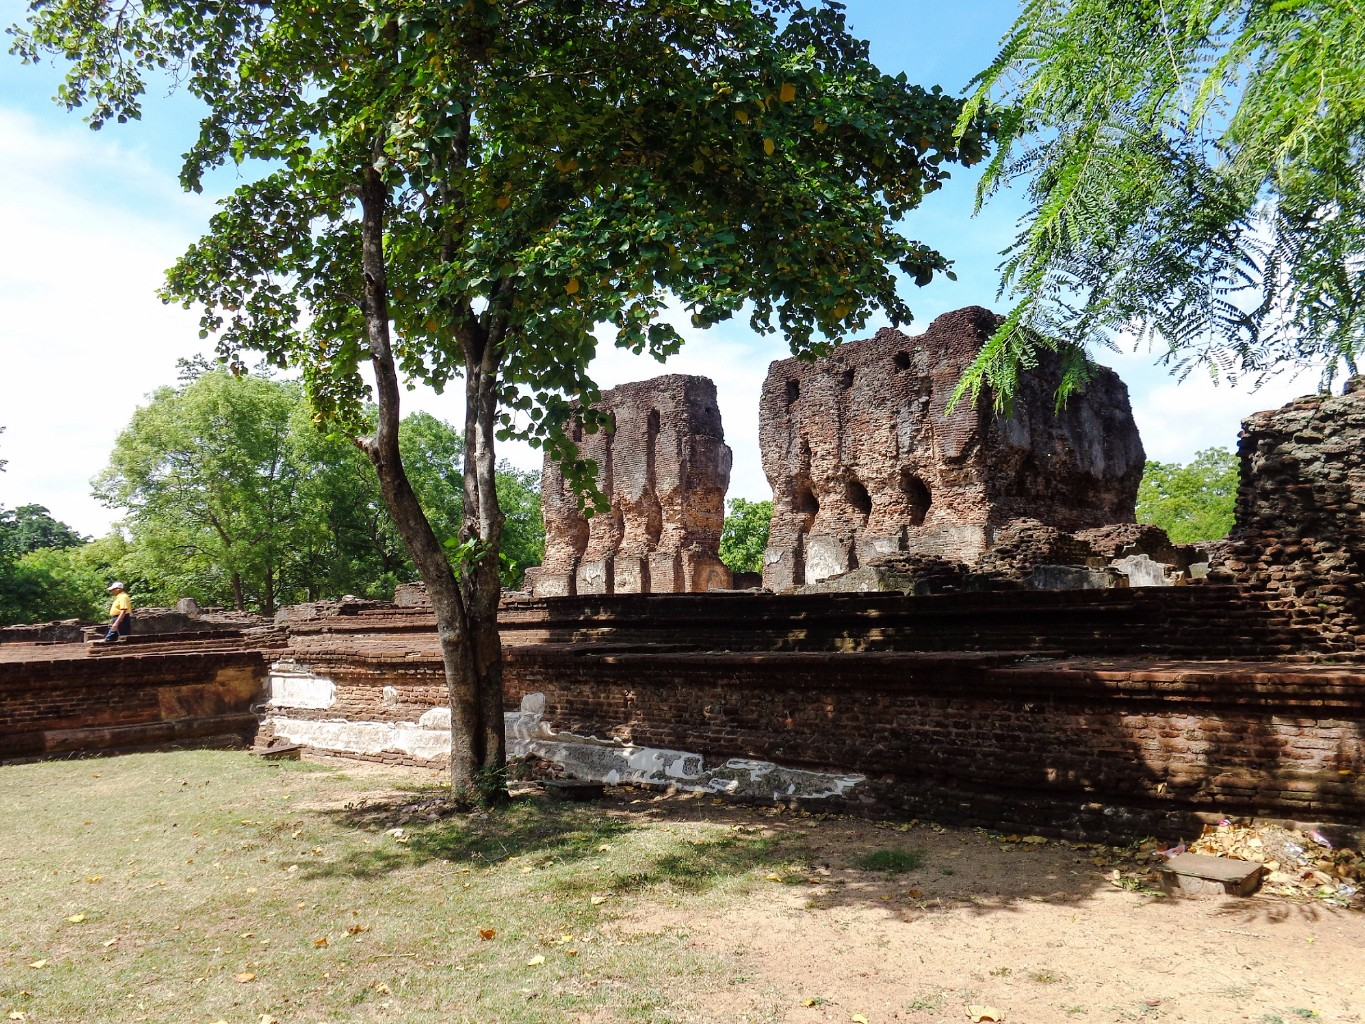 Palace-of-King-Parakramabahu-19